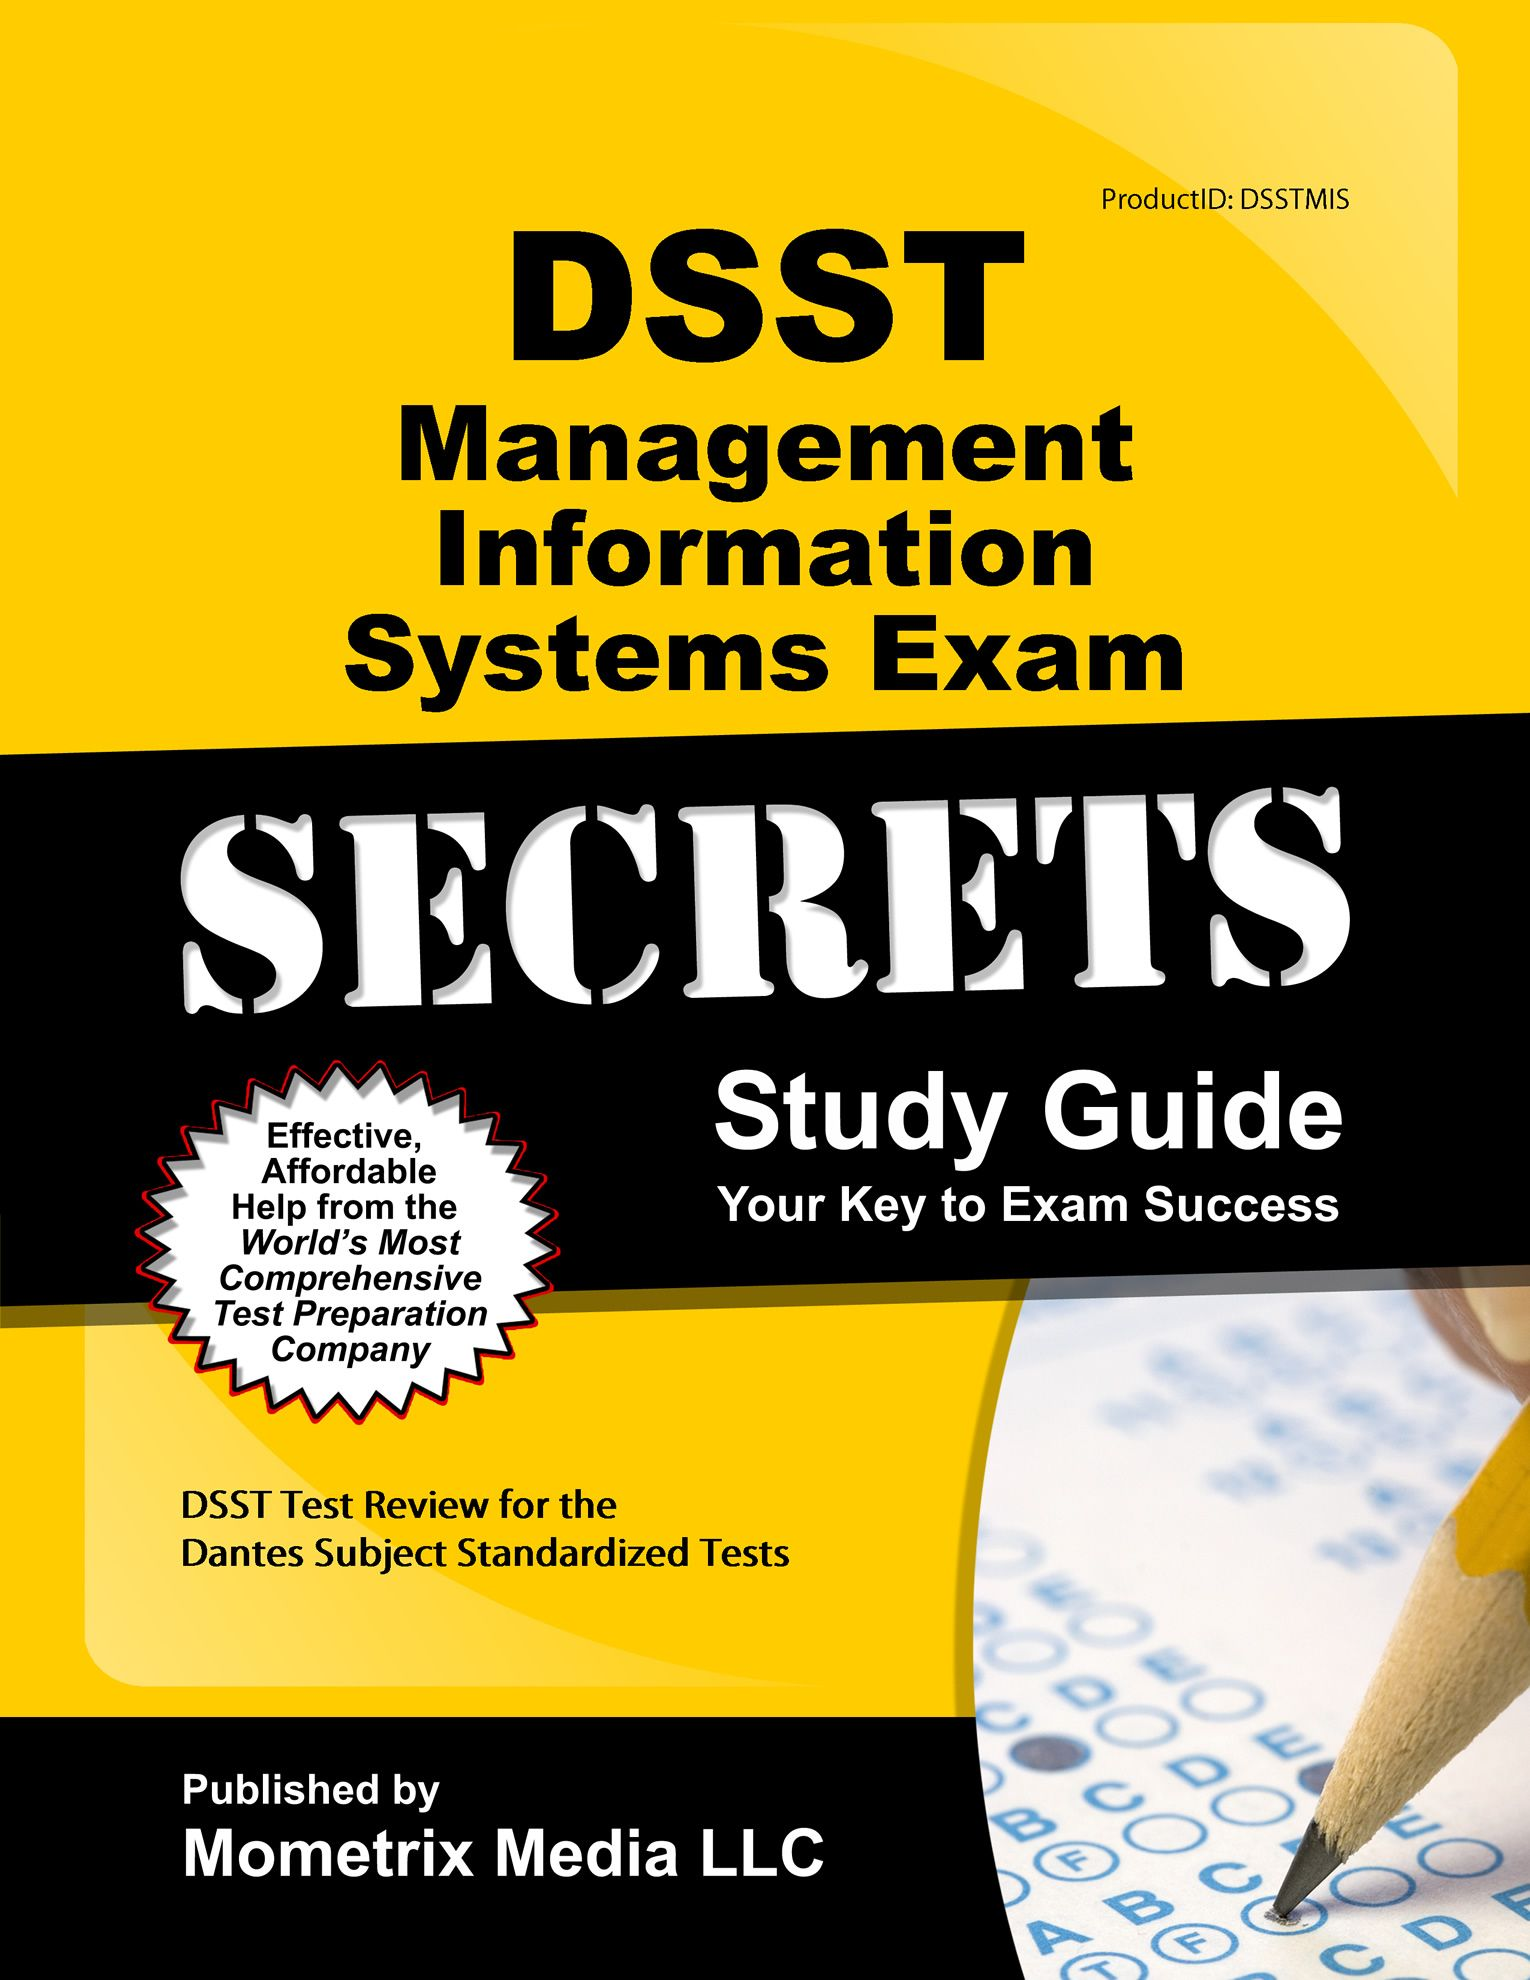 DSST Management Information Systems Exam Study Guide  http://www.mo-media.com/dsst/ #dsst